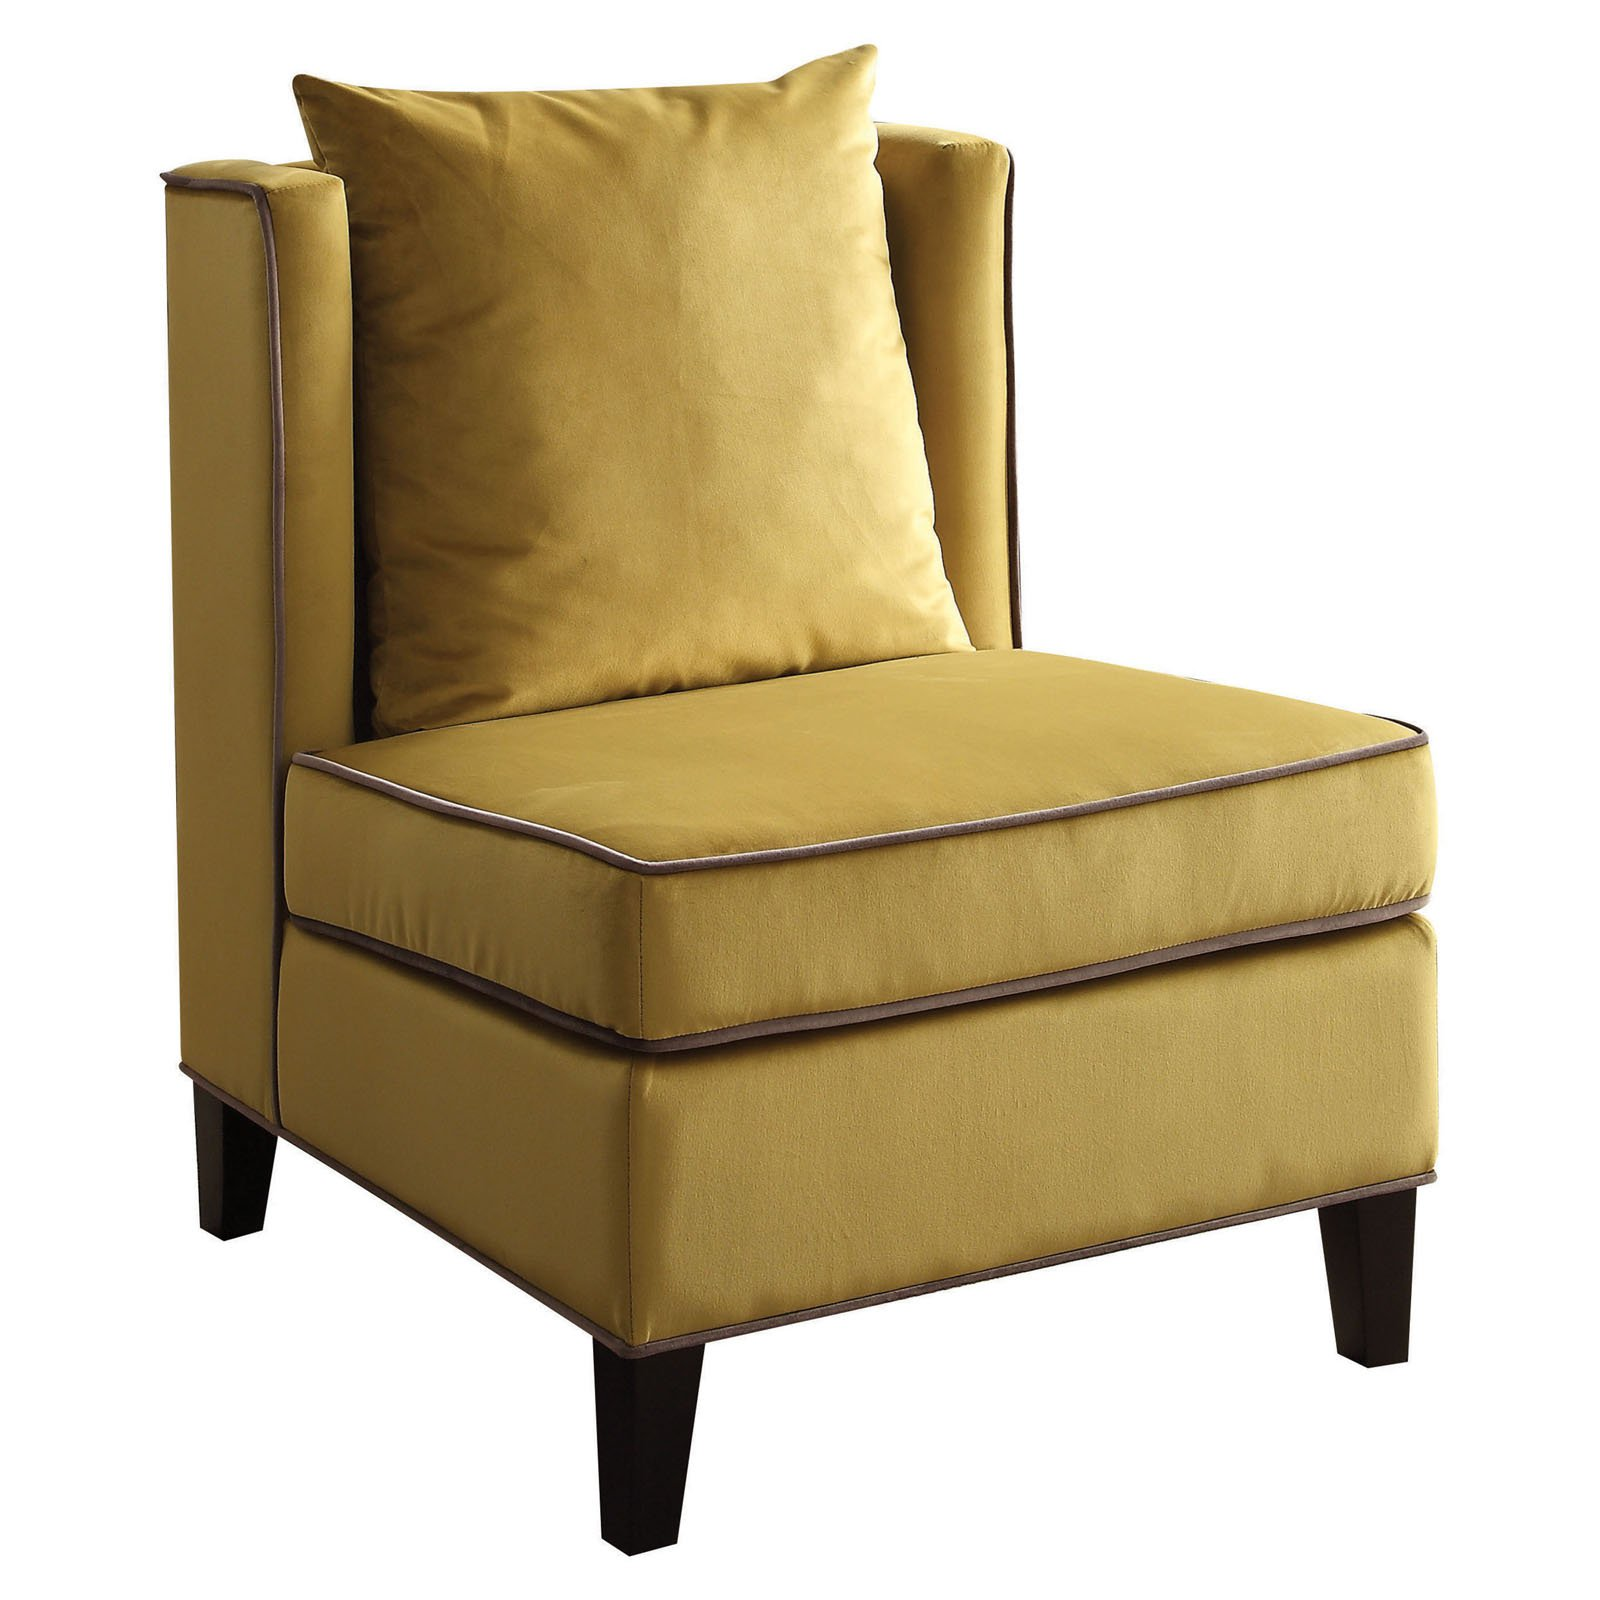 accent chair yellow saucer ikea acme ozella velvet walmart com